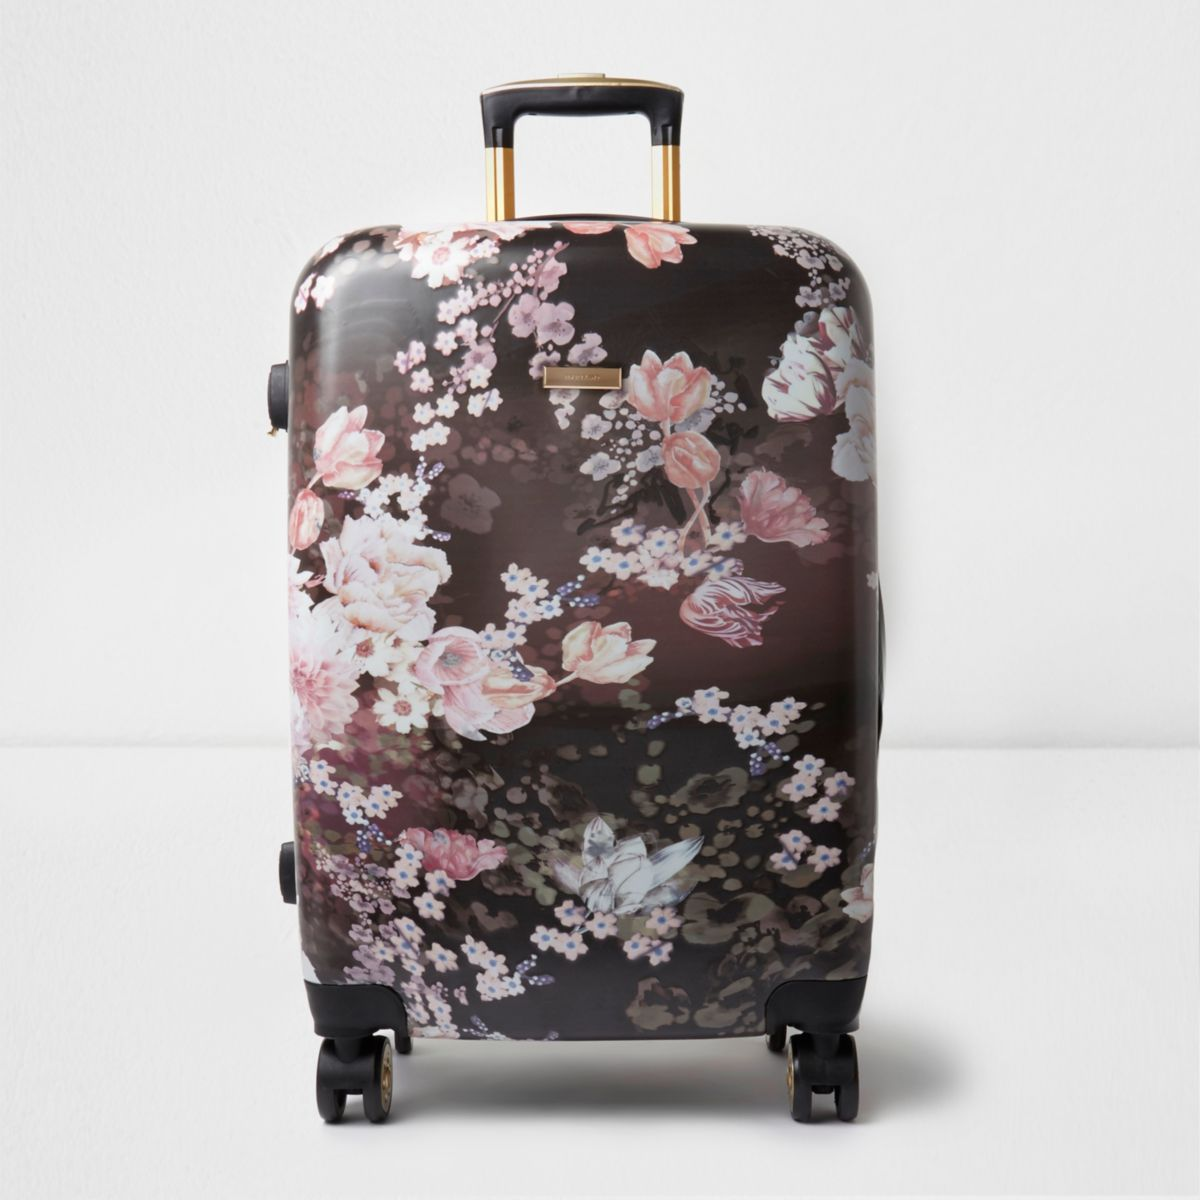 Black floral print hard shell suitcase